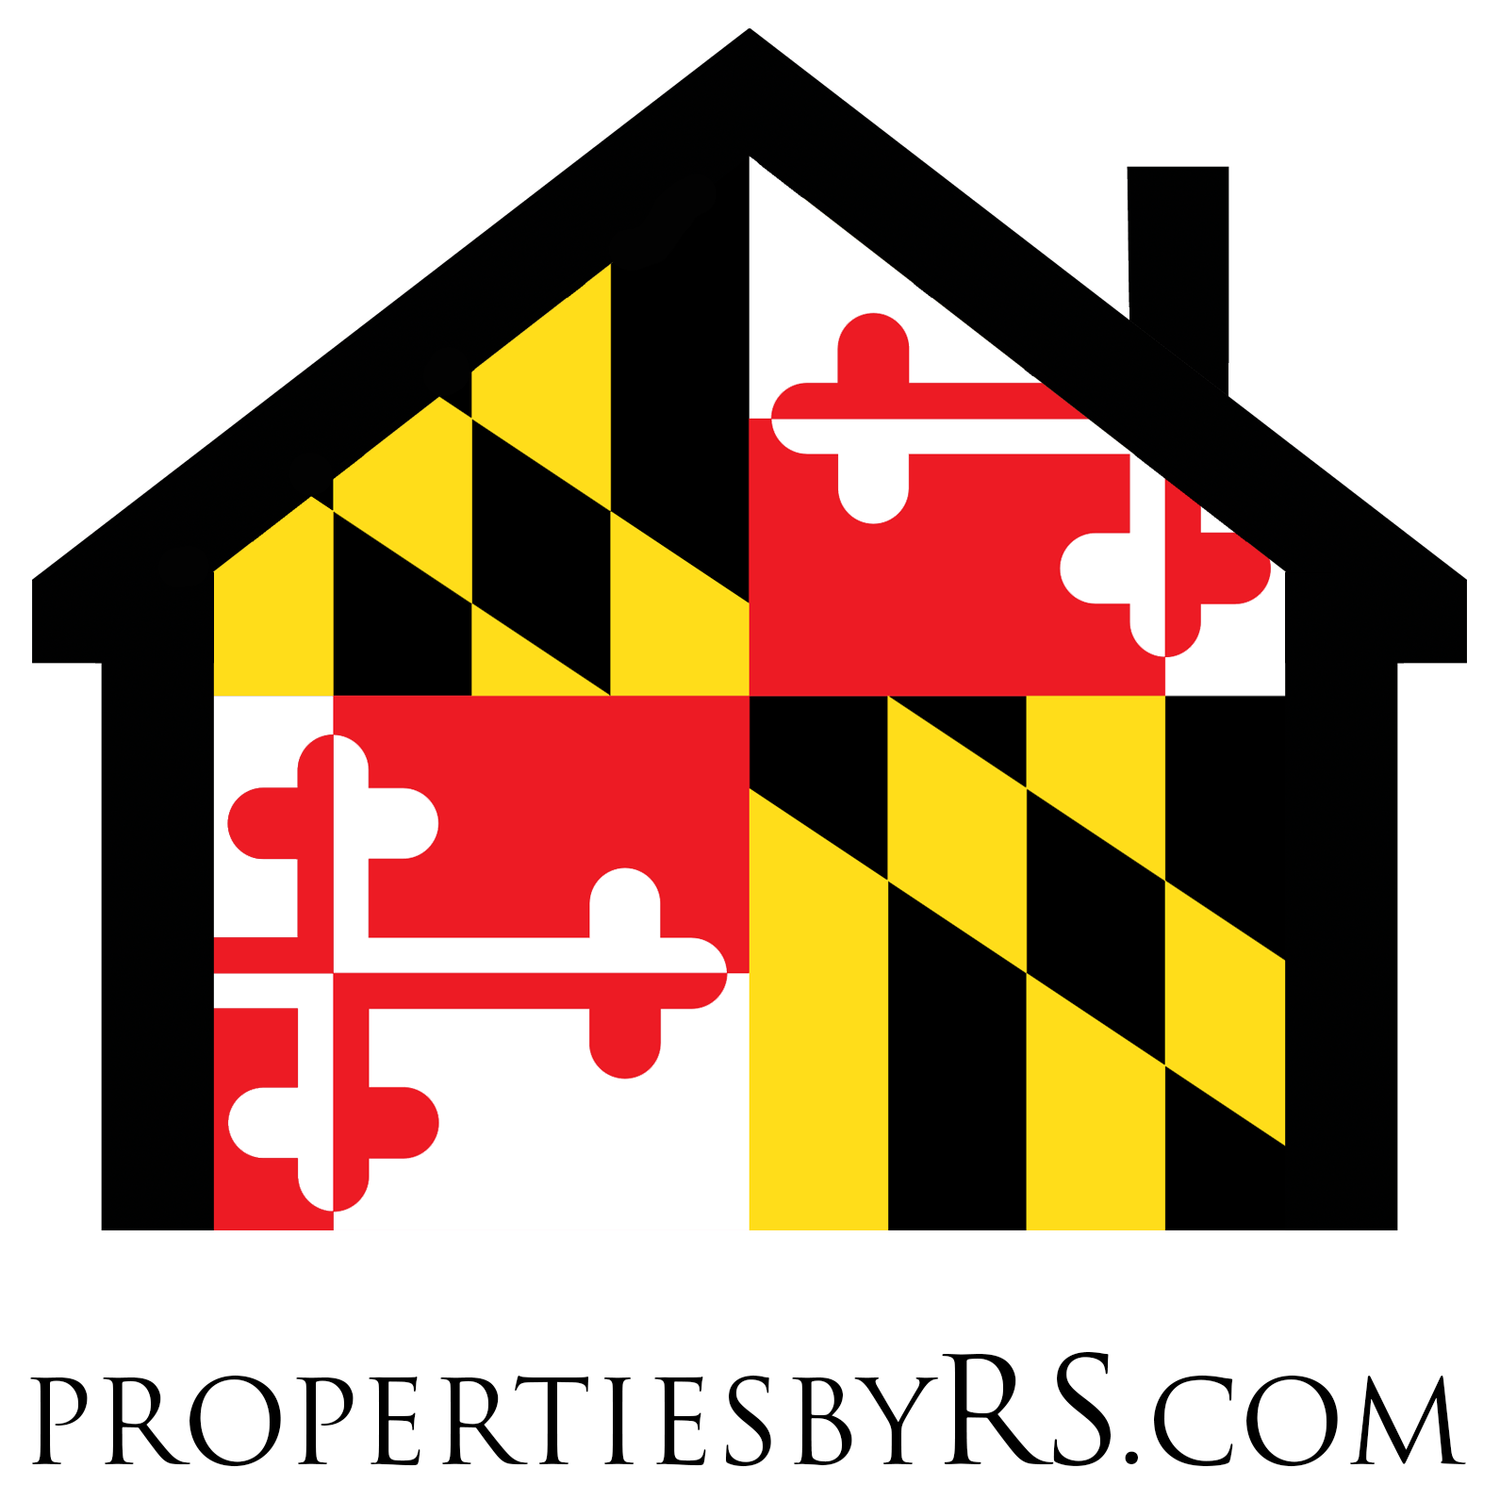 Properties by RS